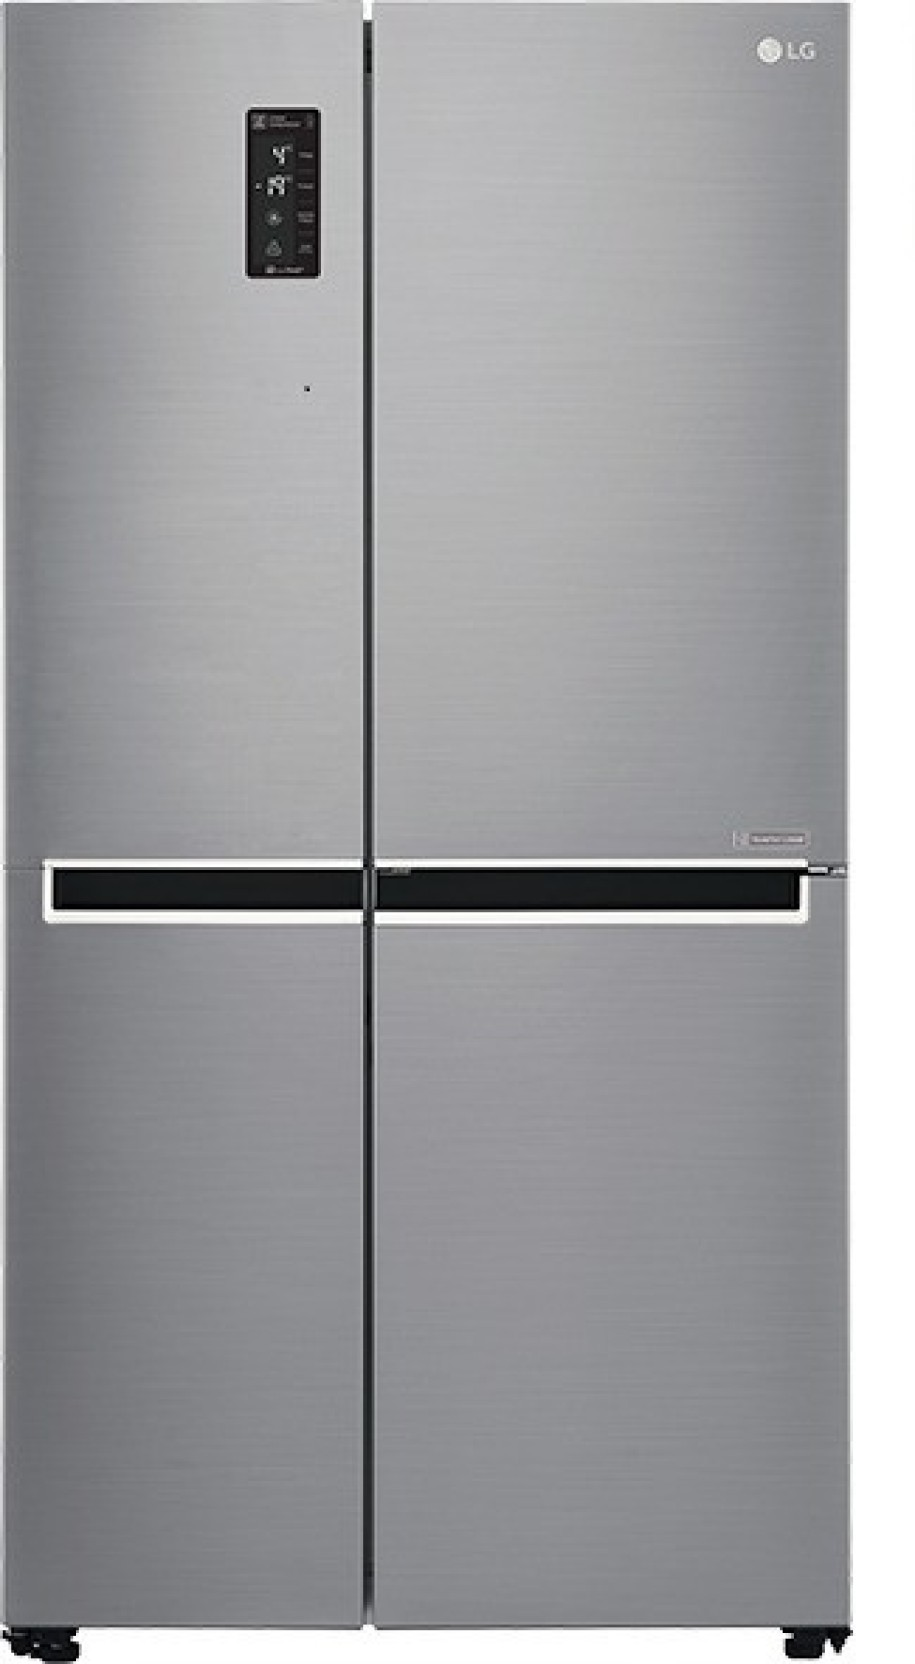 Lg 687 L Frost Free Side By Side Refrigerator Online At